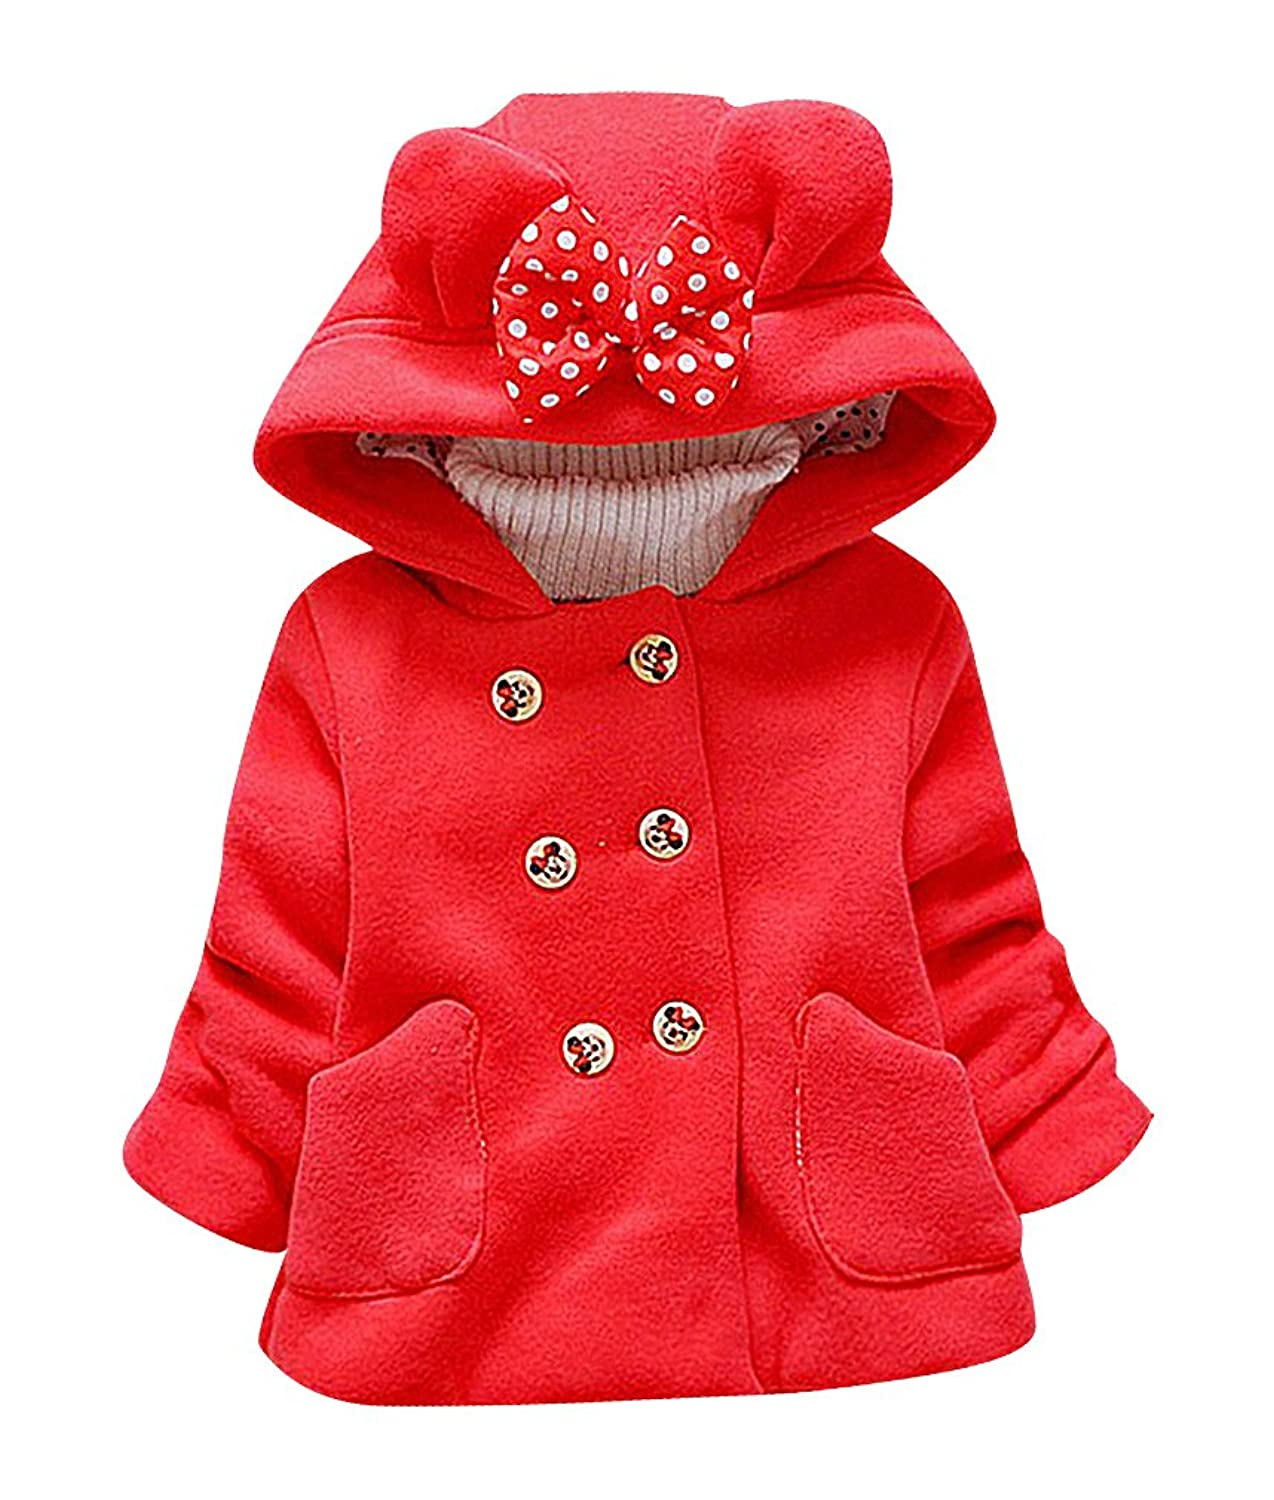 Sweety Baby Girls 1 Color Double Breasted Bow Tie /& Bear Ears Hood Cotton Coat